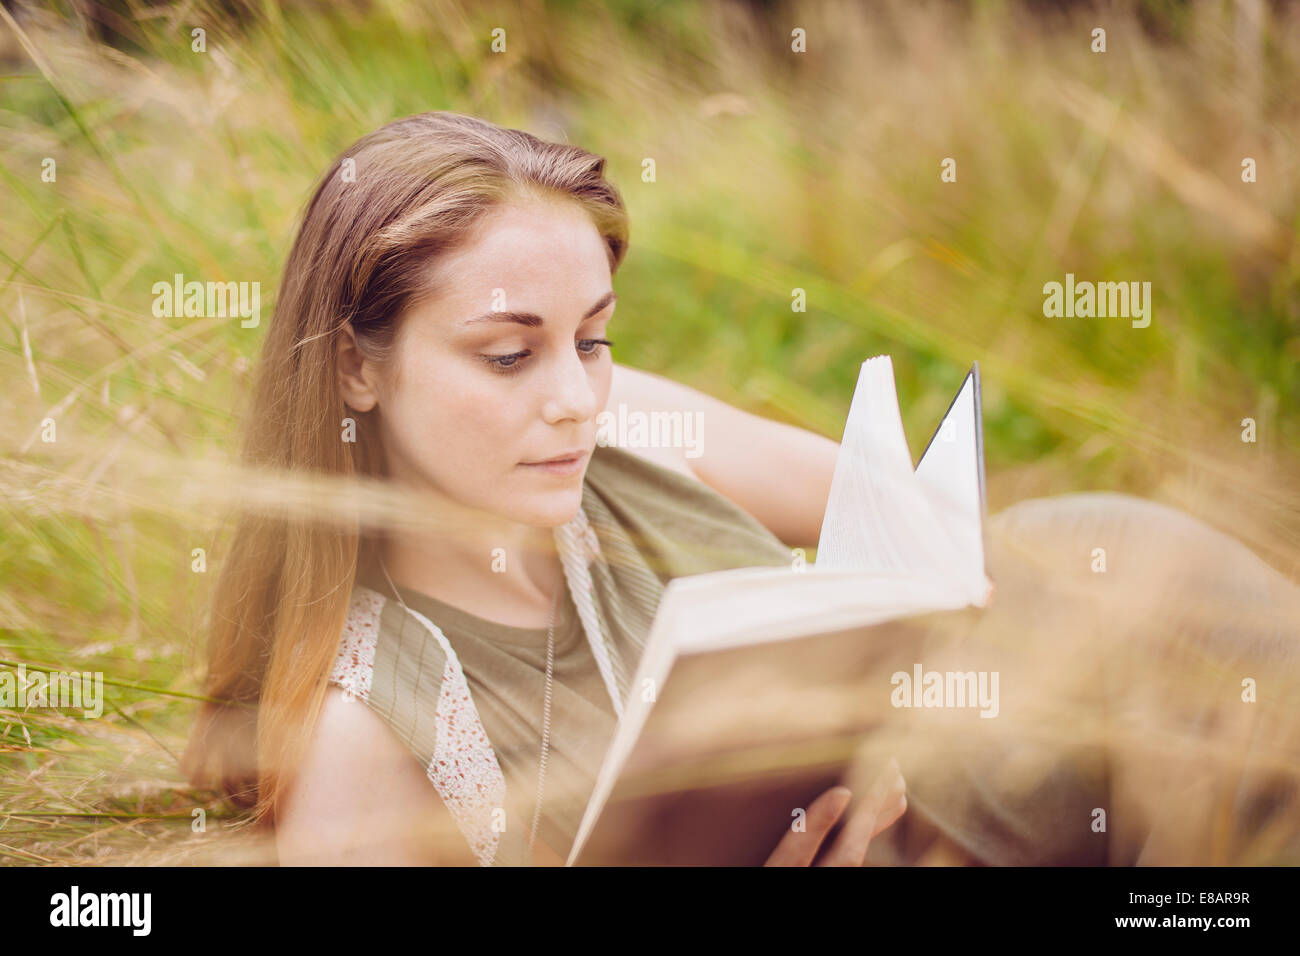 Young woman sitting in long grass reading book - Stock Image